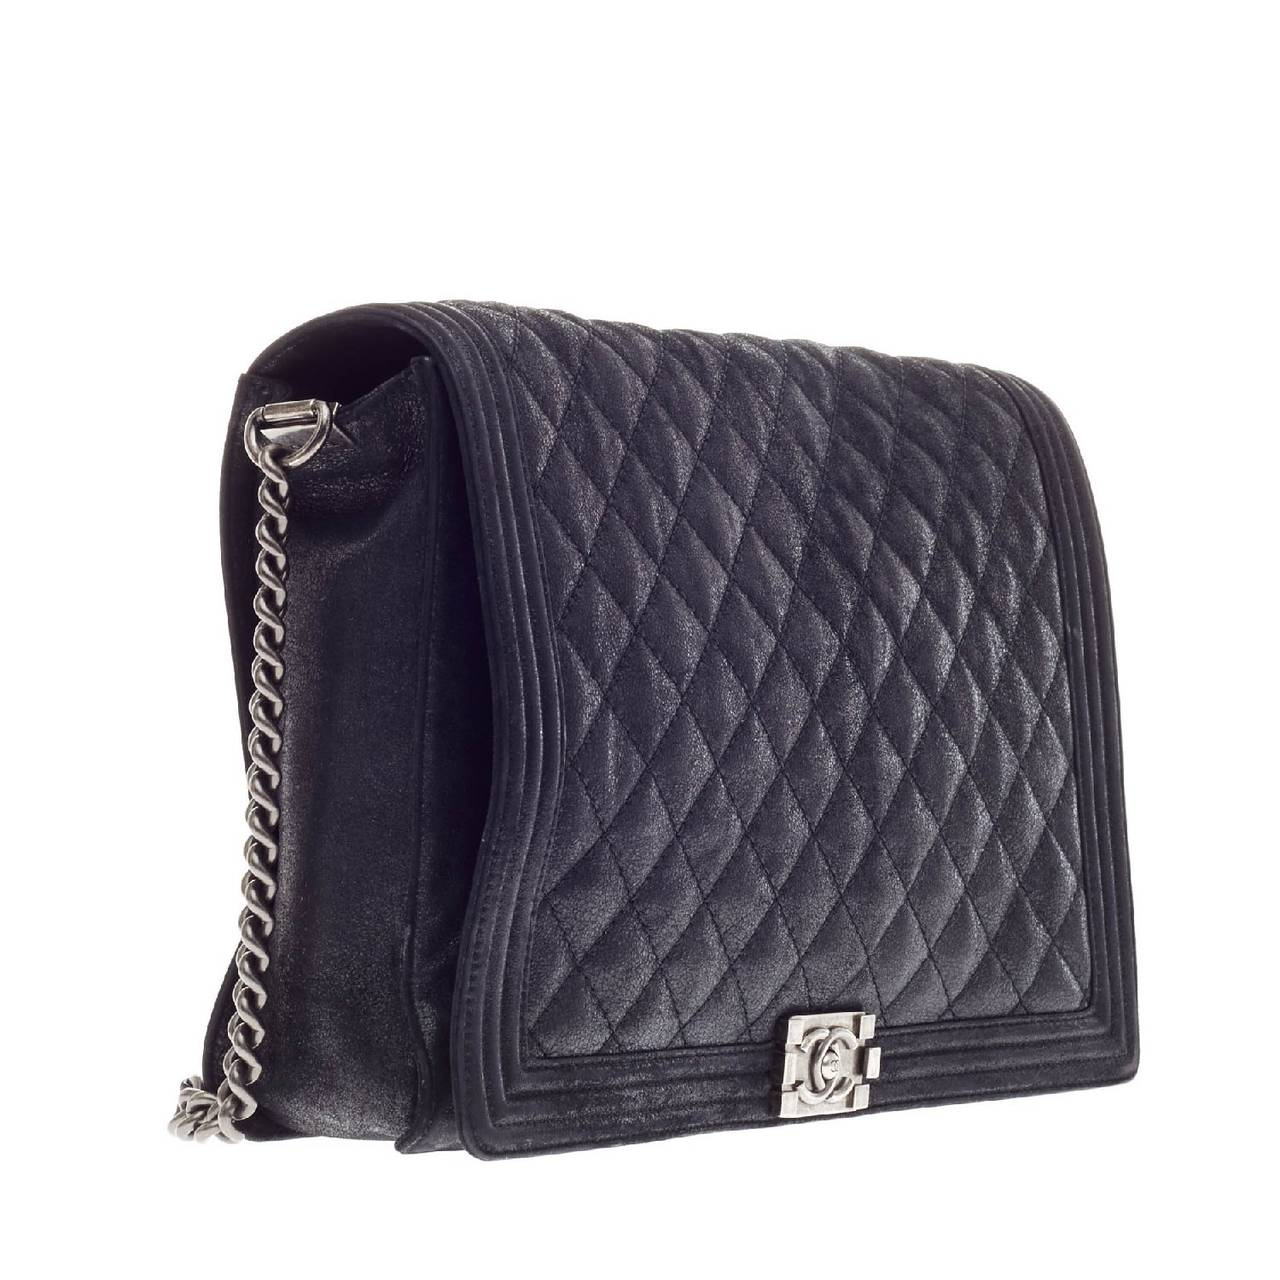 8cbe4fa2d8e5 Chanel Boy Flap Gentle Quilted Goatskin XL In Good Condition For Sale In  New York,